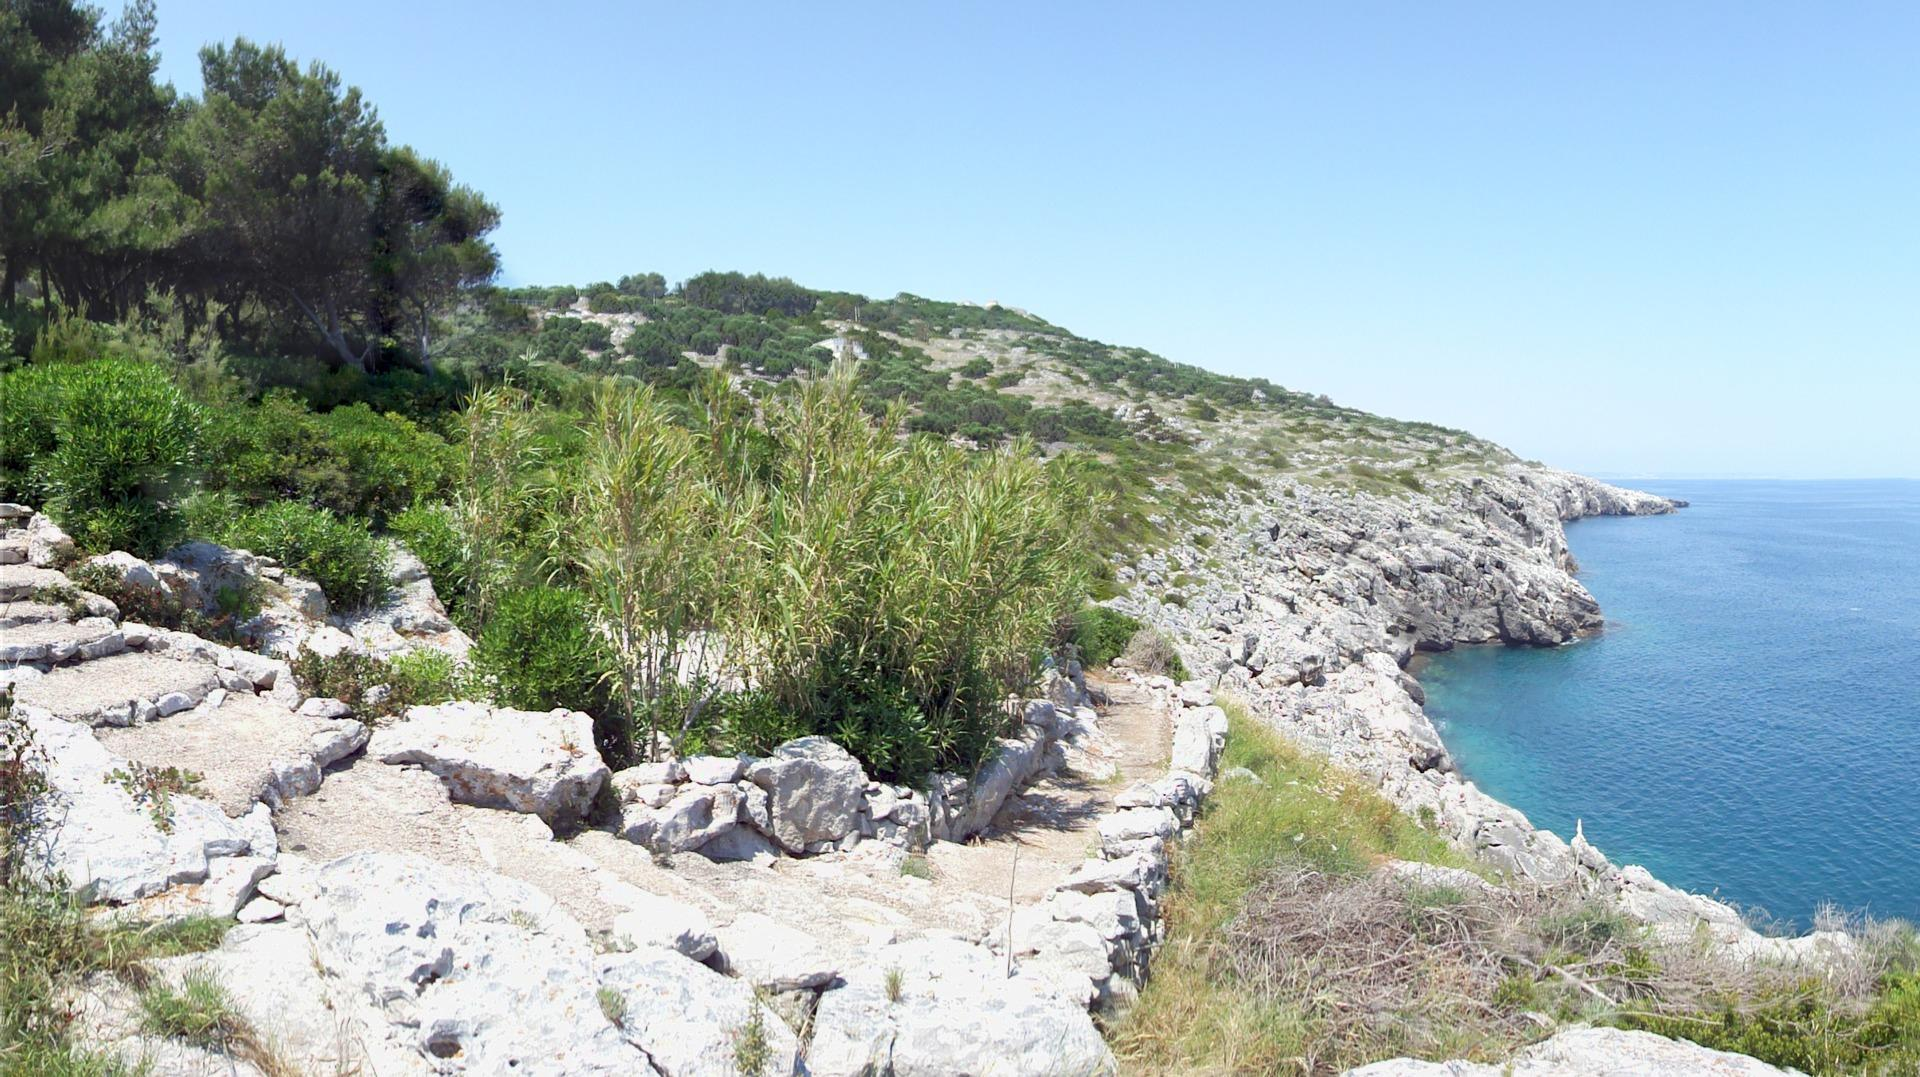 The sea path to comfortable private rock cove with platform and stairs to enter the water